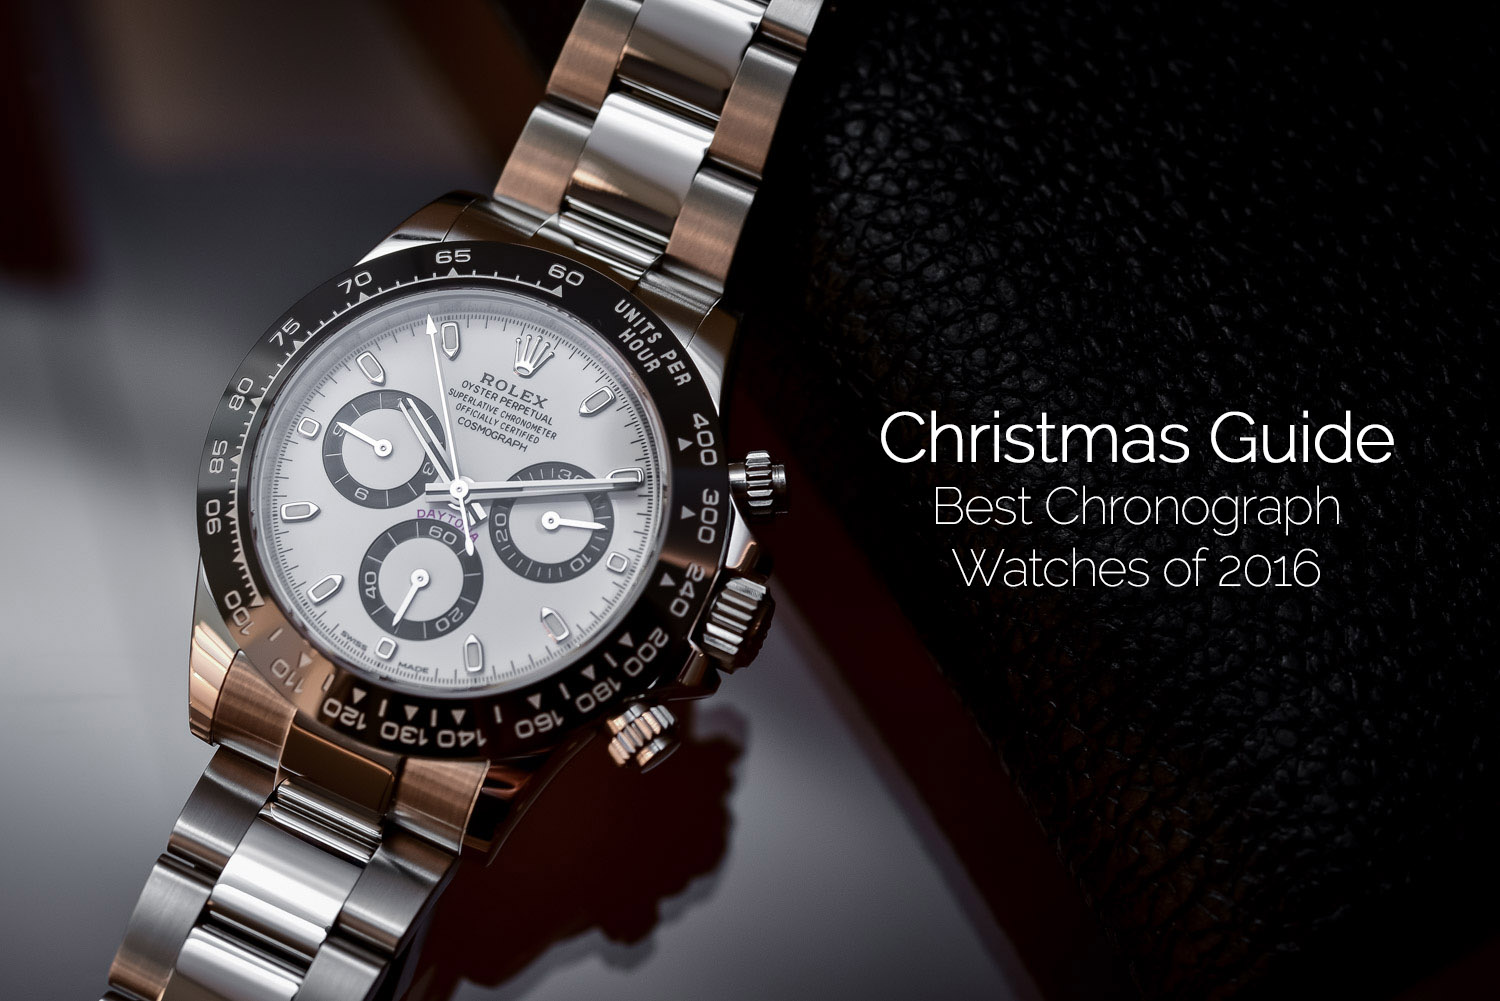 Christmas Shopping Guide - Best Chronograph Watches of 2016